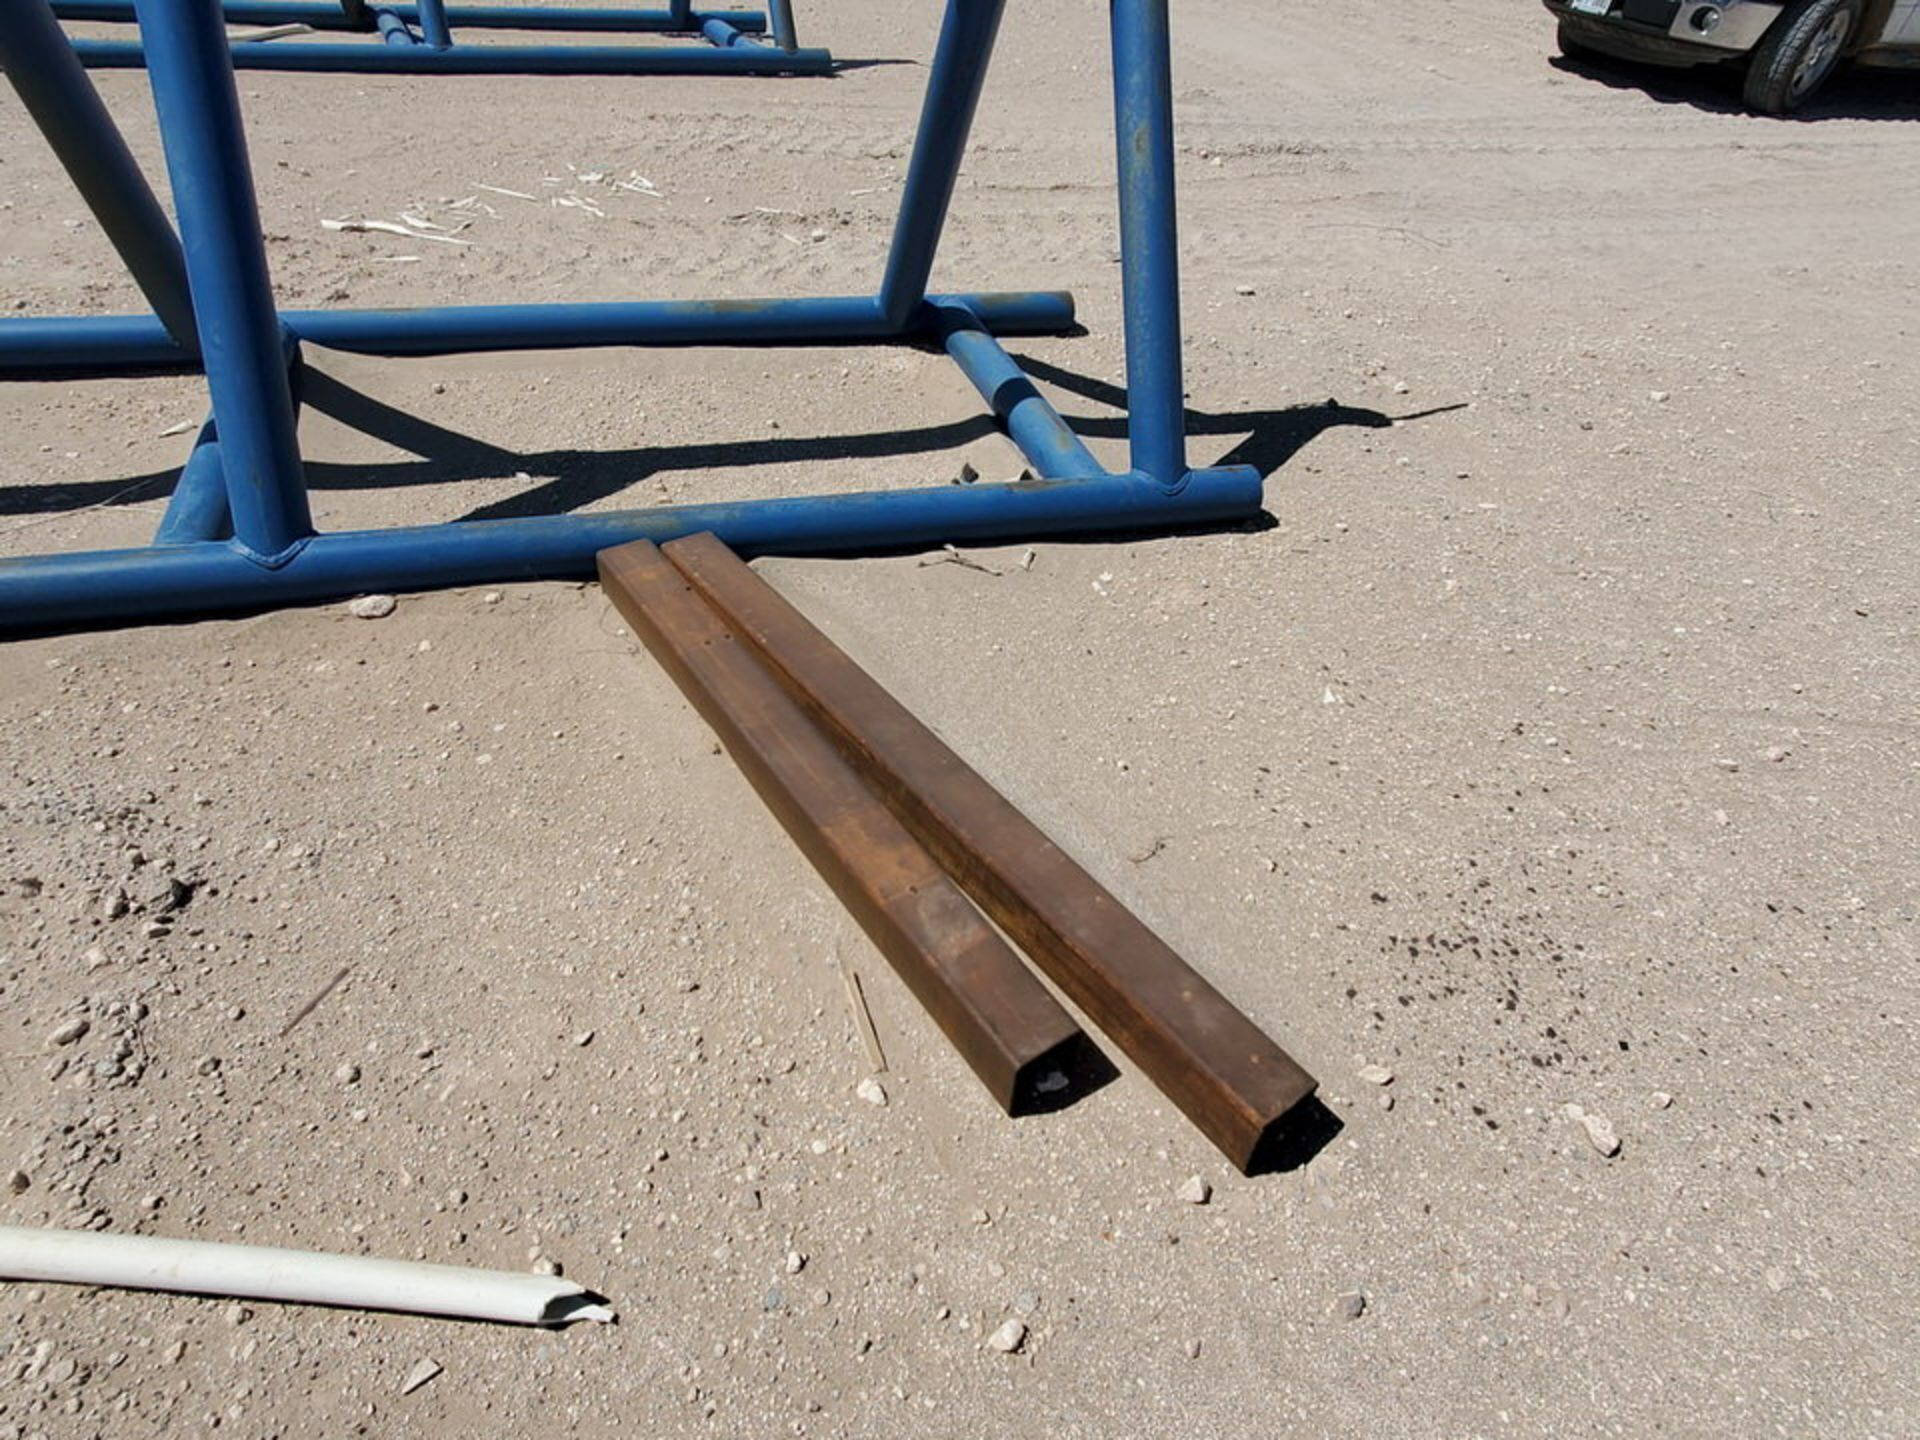 "Assorted Matl. To Include But Not Limited To: Angle, Channel, Sq. Tubing, Rect. Tubing, etc., 6"" - - Image 3 of 16"